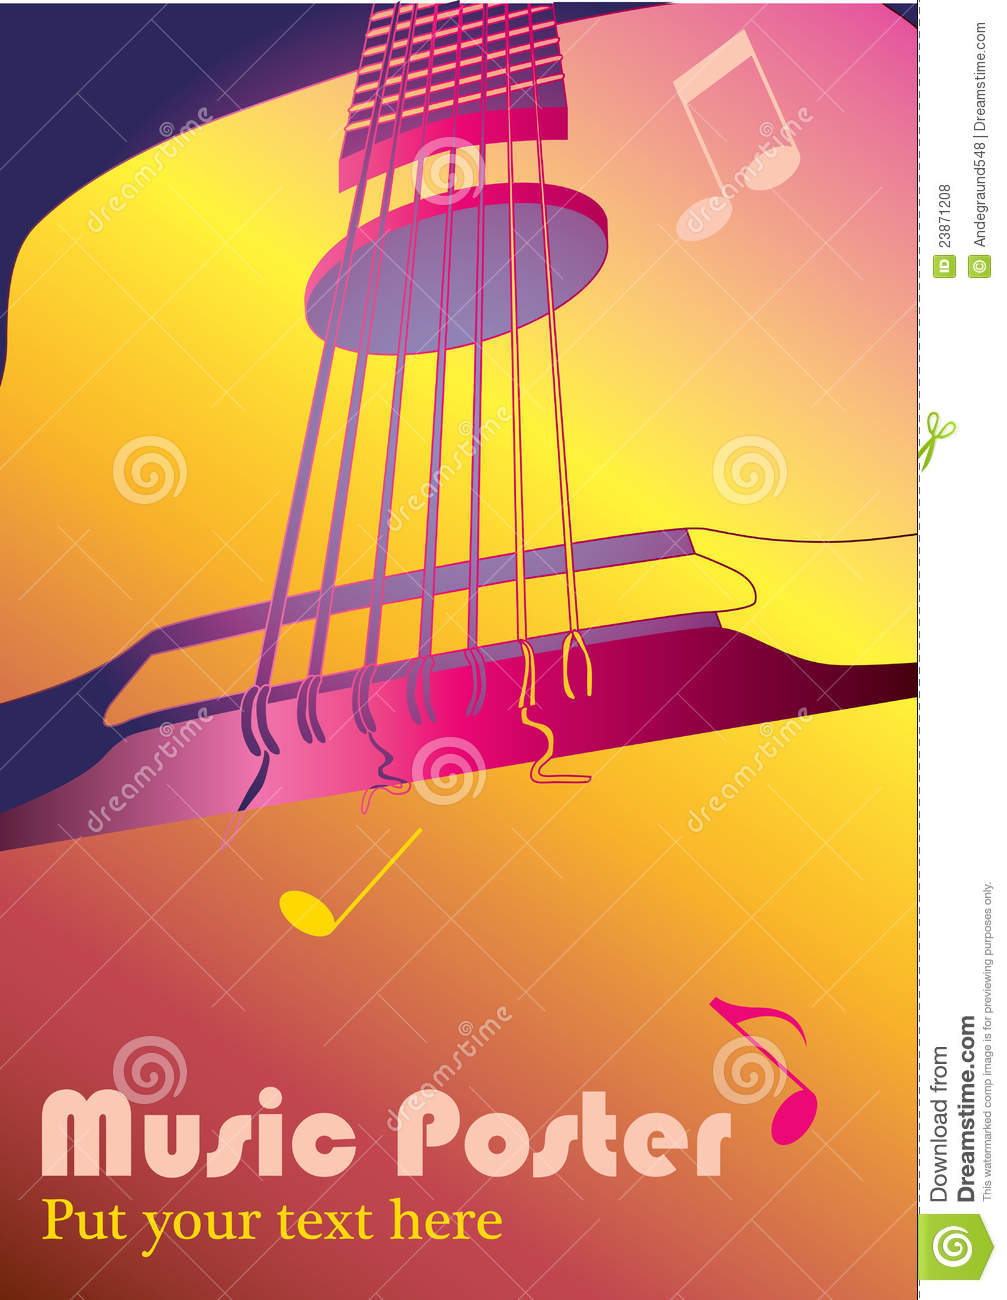 Music Background Or Poster Royalty Free Stock Photos - Image: 23871208